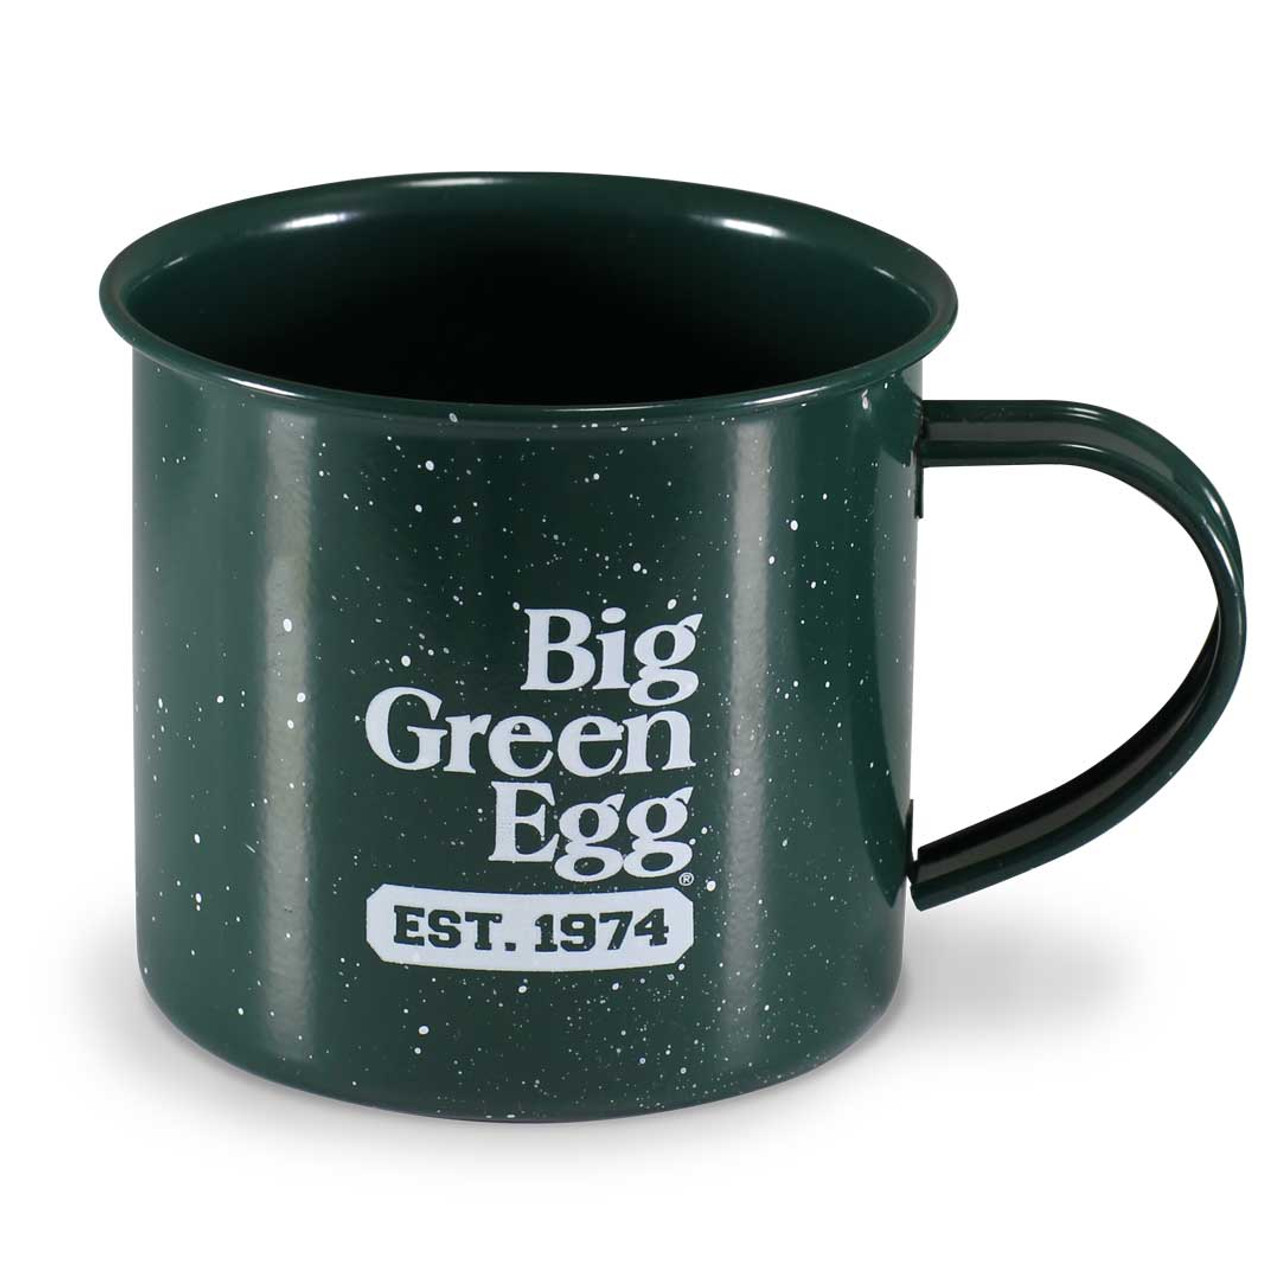 16 oz Campfire Mug, Green This lightweight, enamel mug is perfect for camping, tailgating, picnics, as well as everyday use. Ideal for warm drinks, soups, cereal and more.